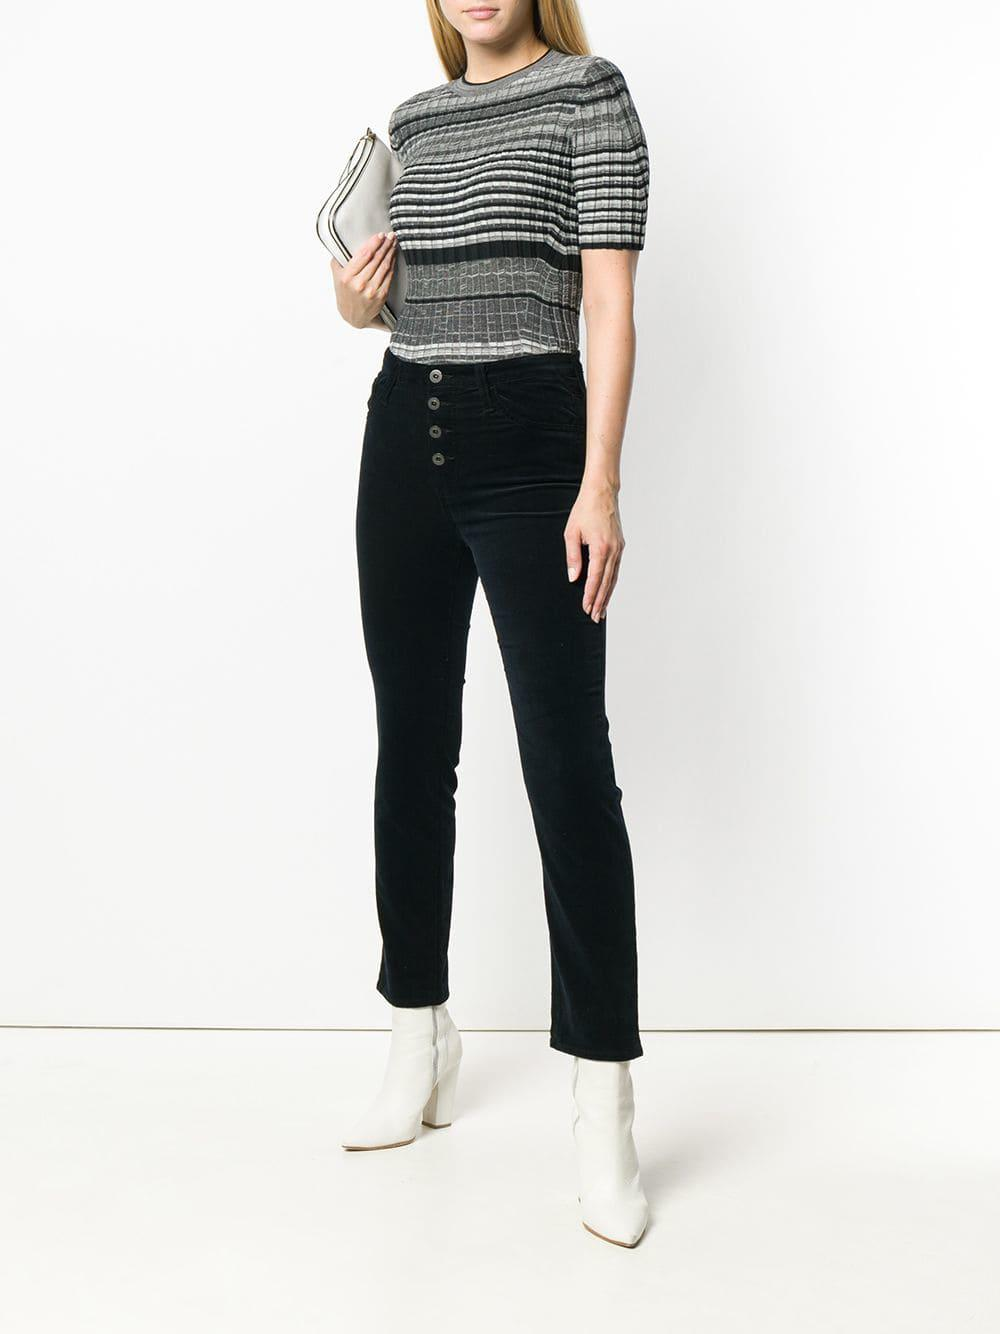 b98d8f5fce08 Lyst - Ag Jeans Isabelle Button Up Trousers in Black